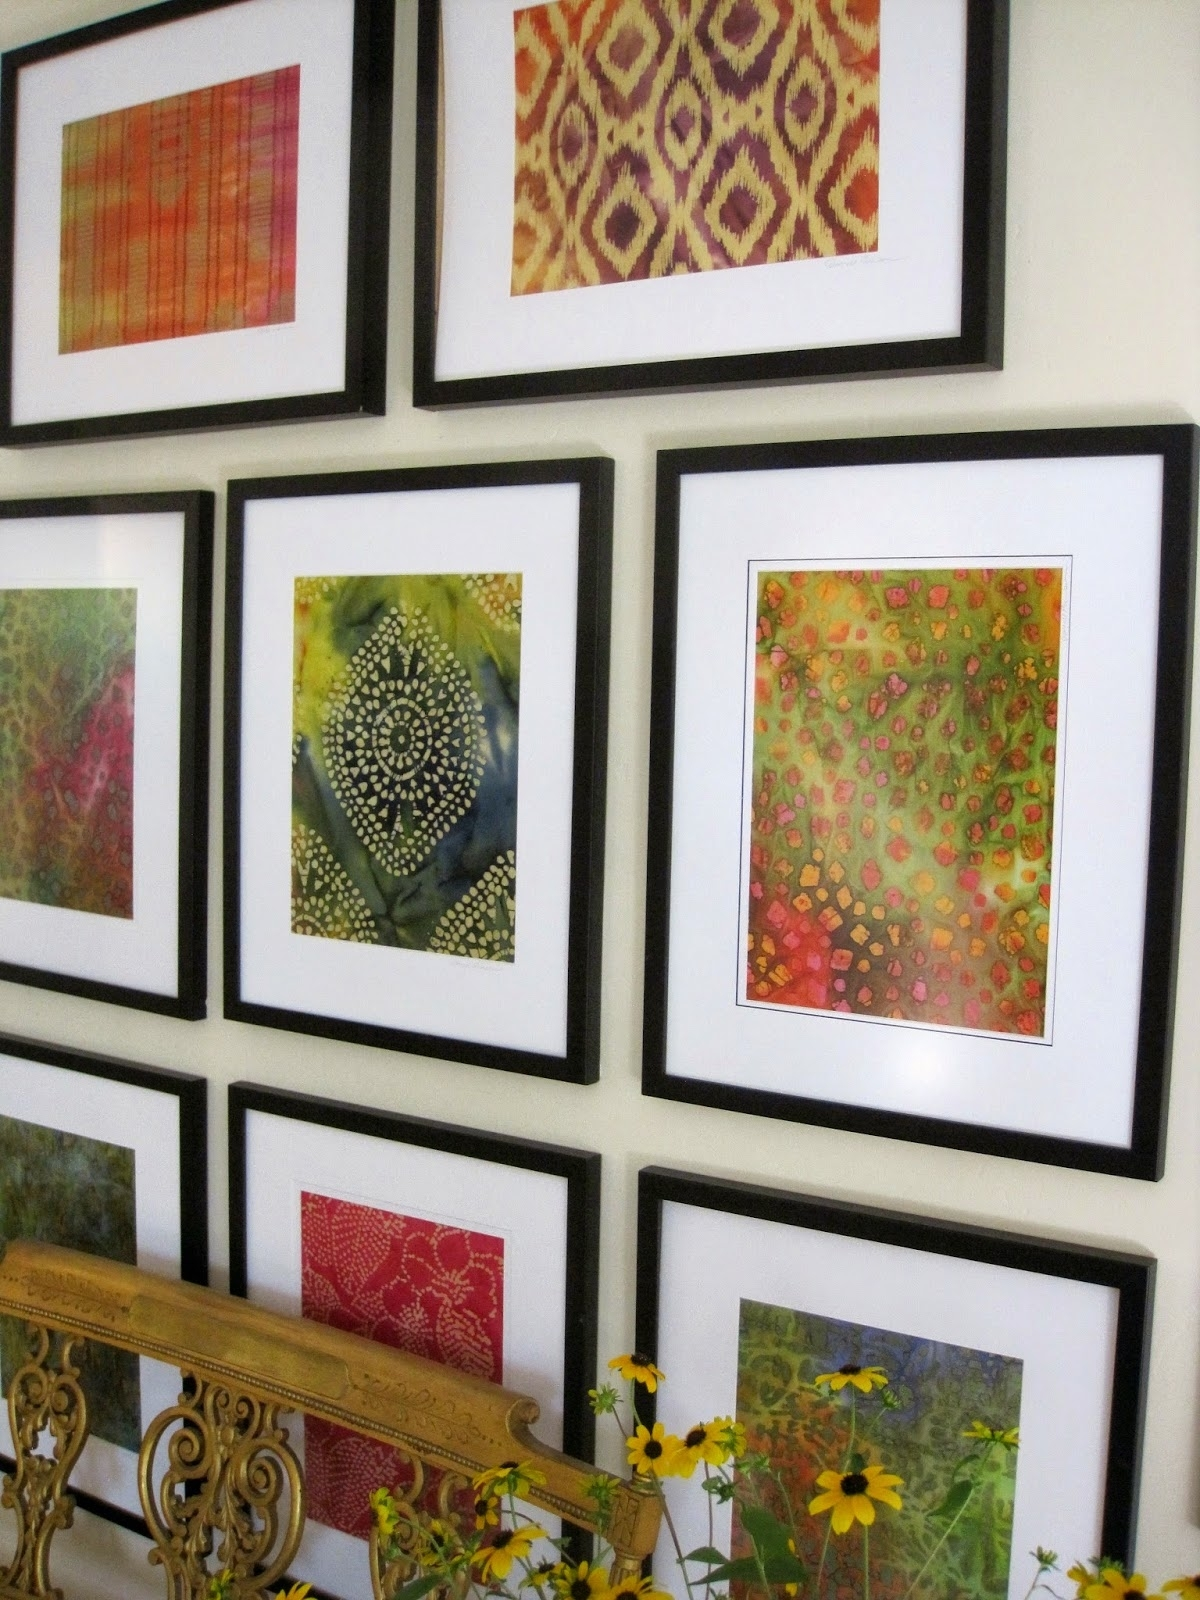 Simple Details: Diy Framed Batik Fabric Great Way To Get Cheap Within Most Up To Date Batik Fabric Wall Art (View 3 of 15)